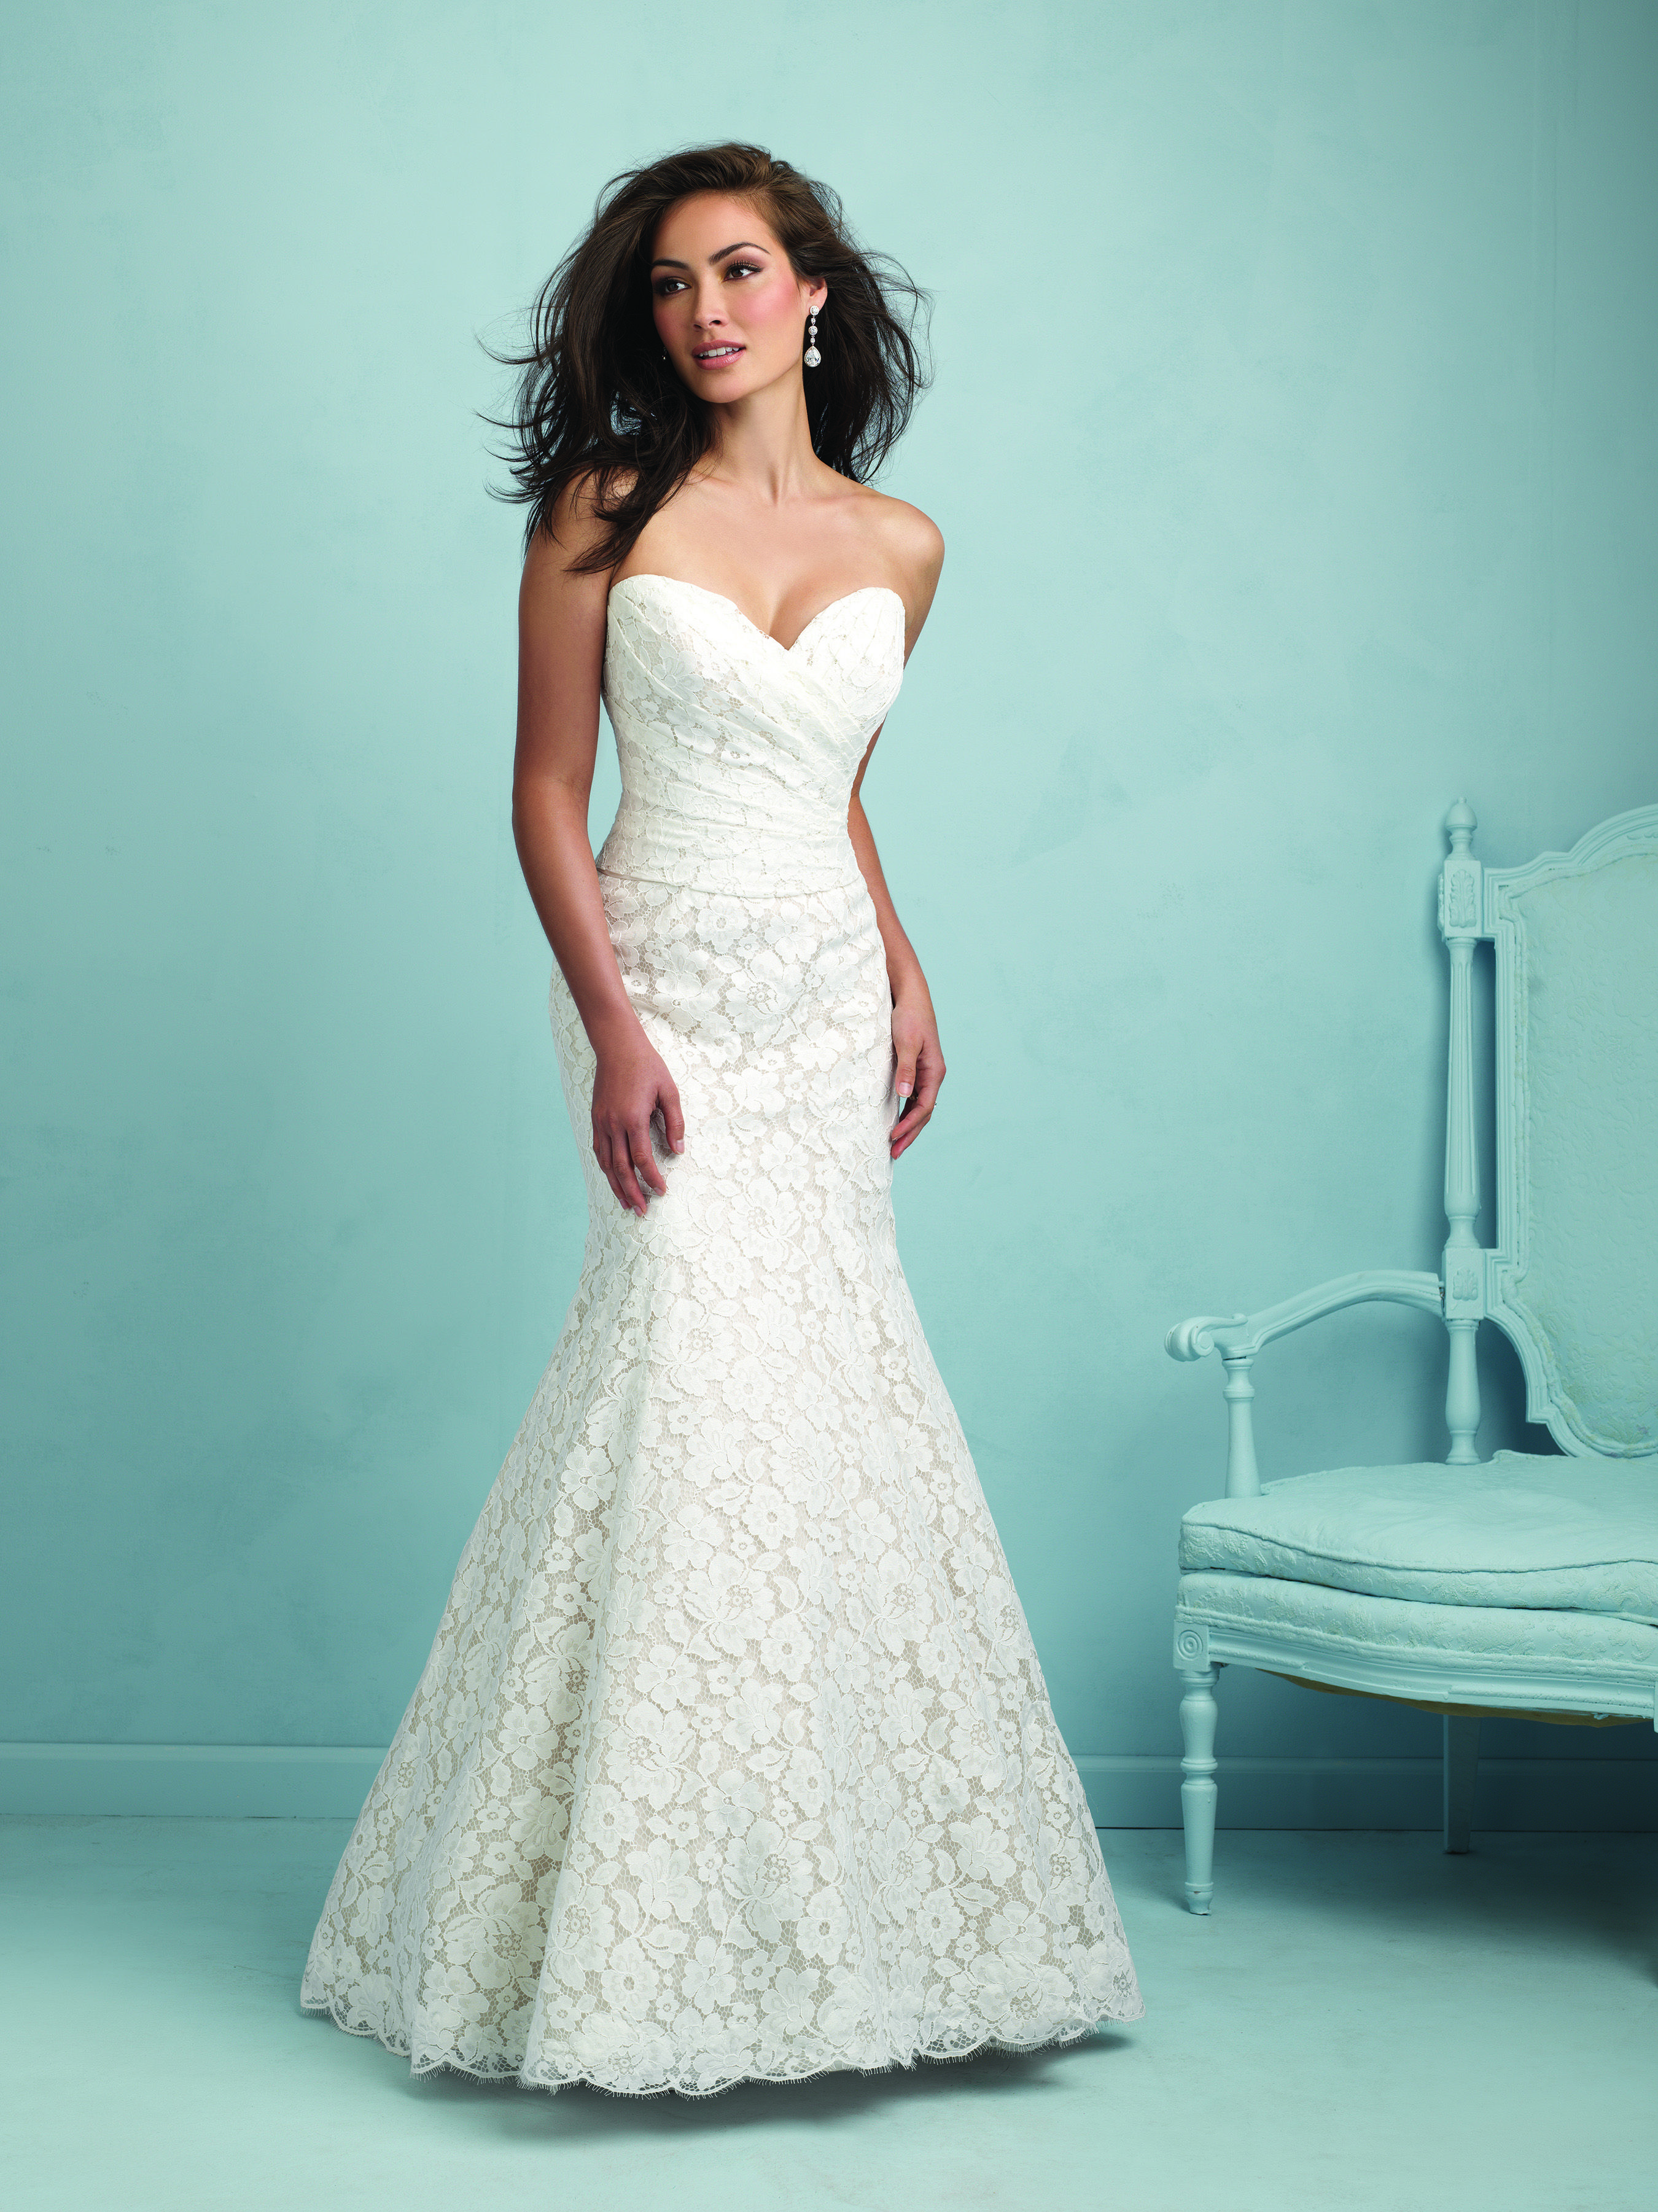 Allure Bridals 9210 Ashley Rene\'s 655 CR 17 Elkhart, IN 46516 (574 ...